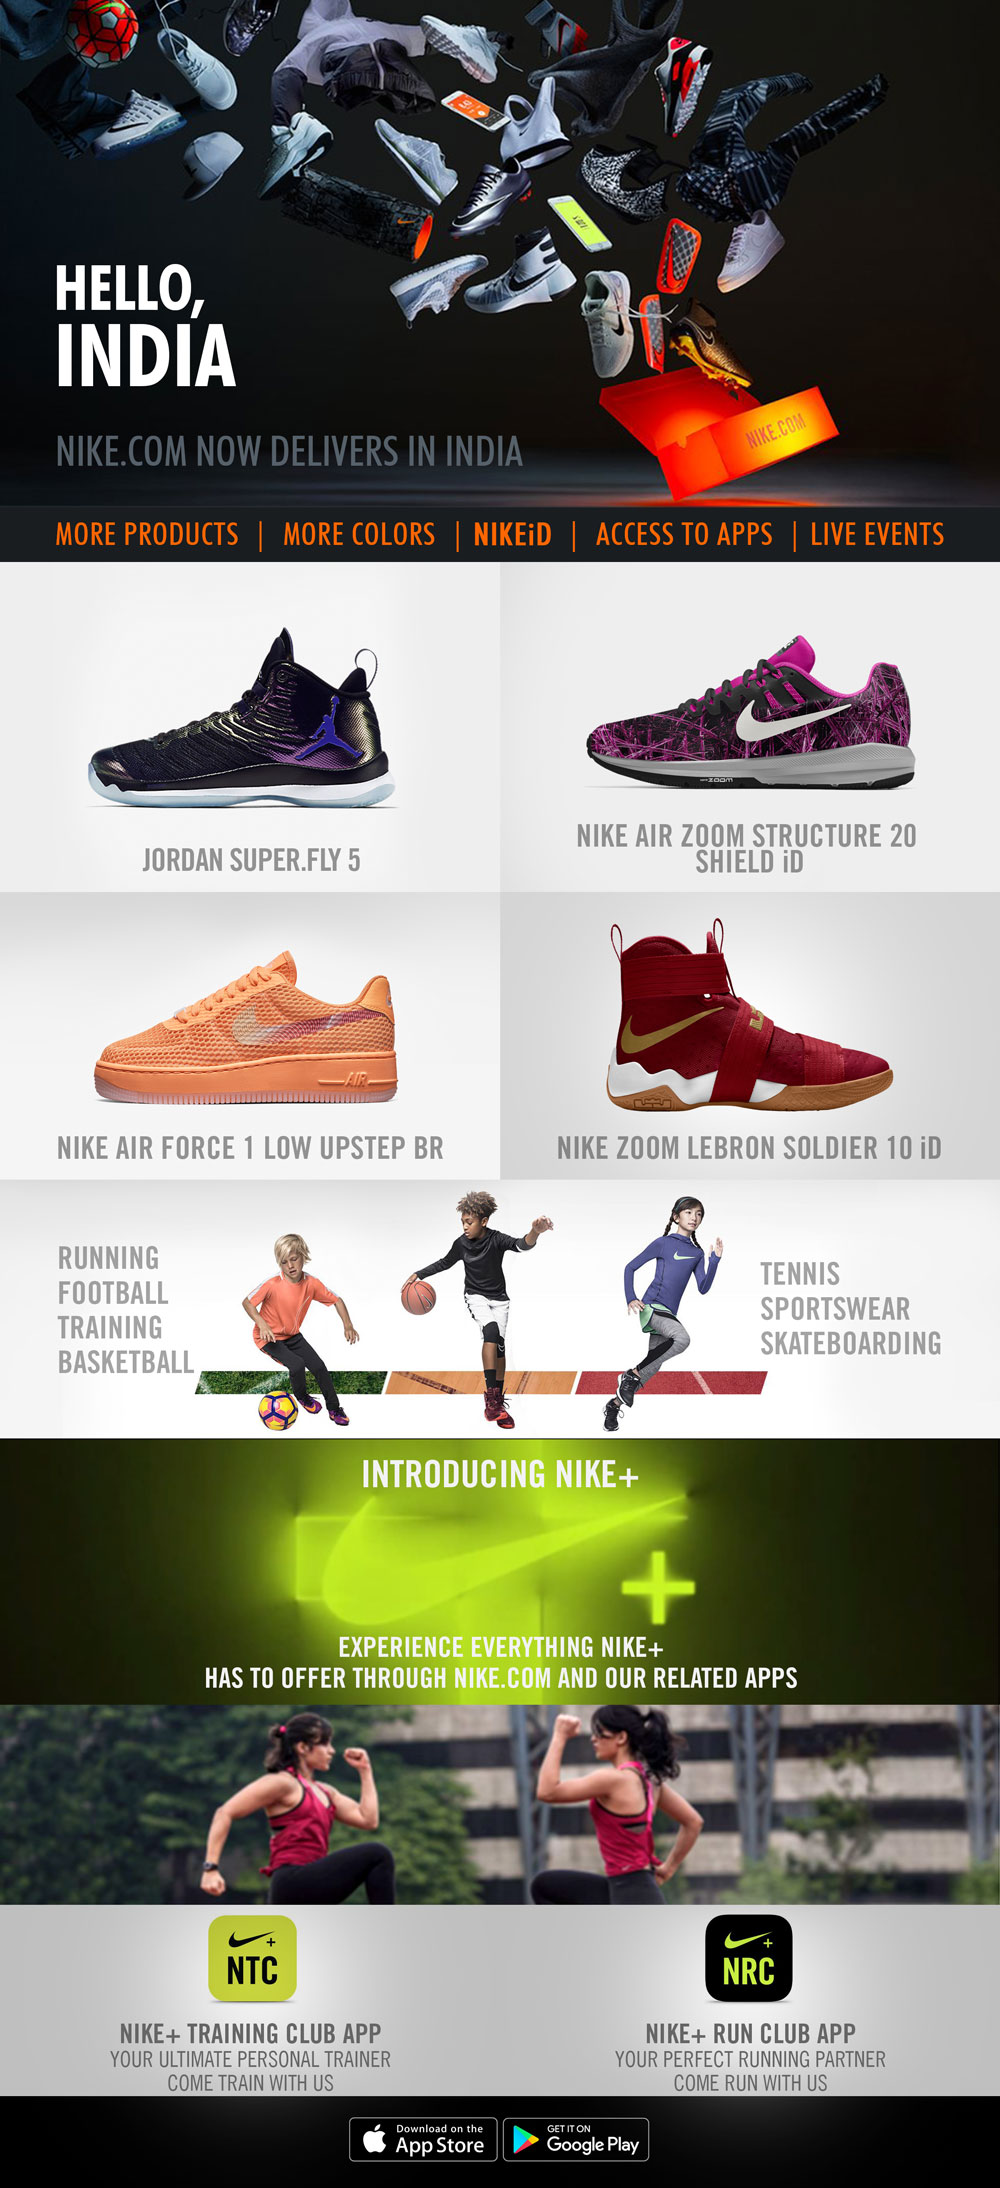 Nike Com Launches Exclusive Delivery Service In India